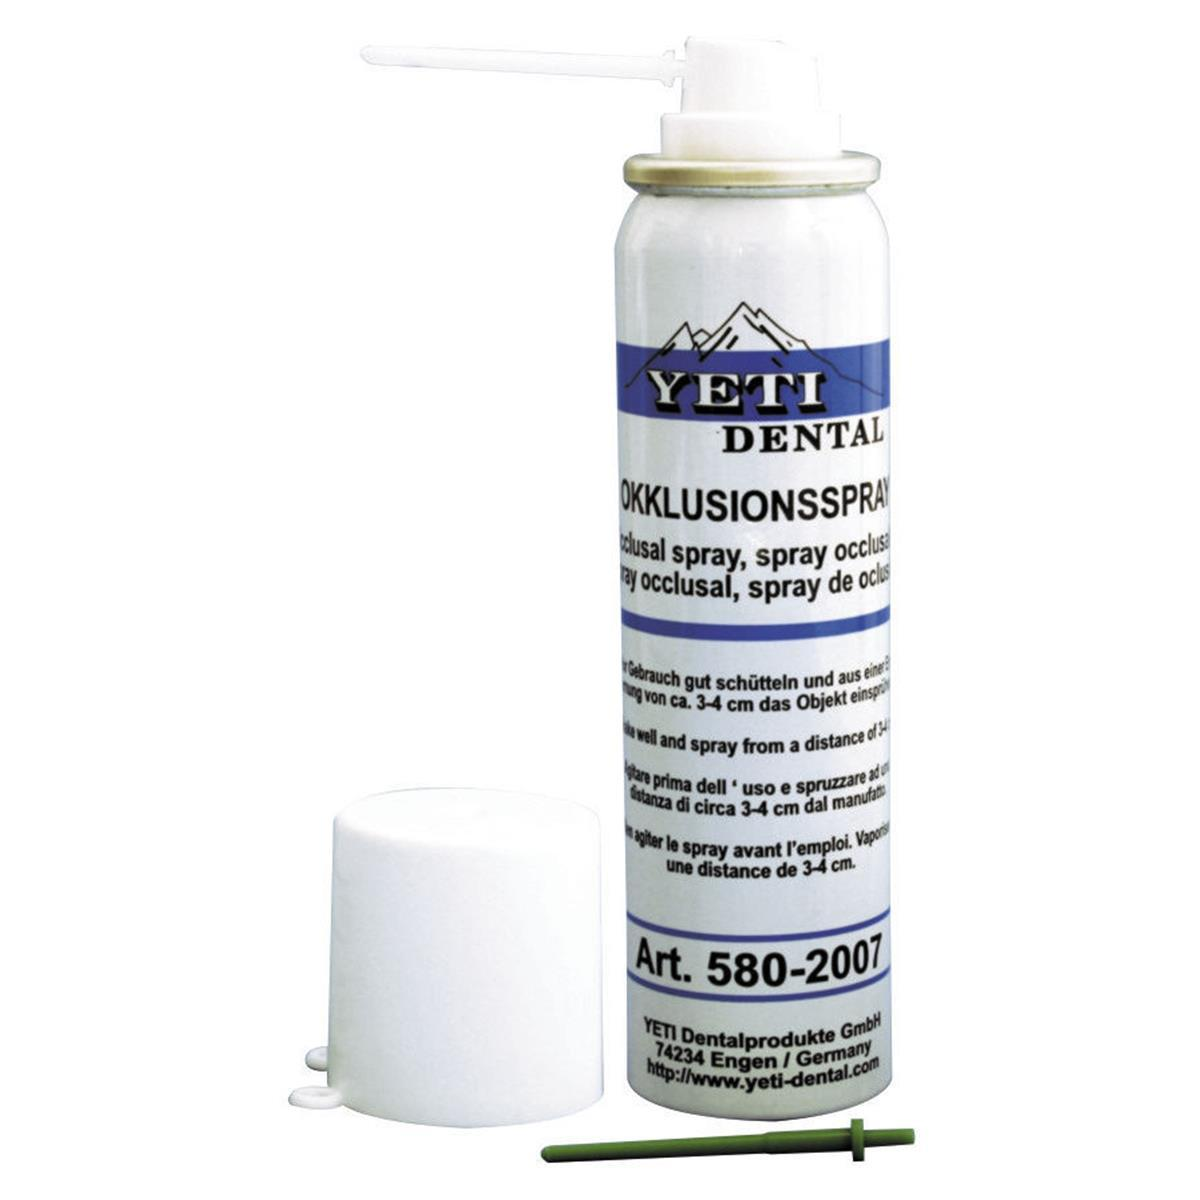 OKKLUSIONS SPRAY -  YETI Colore verde